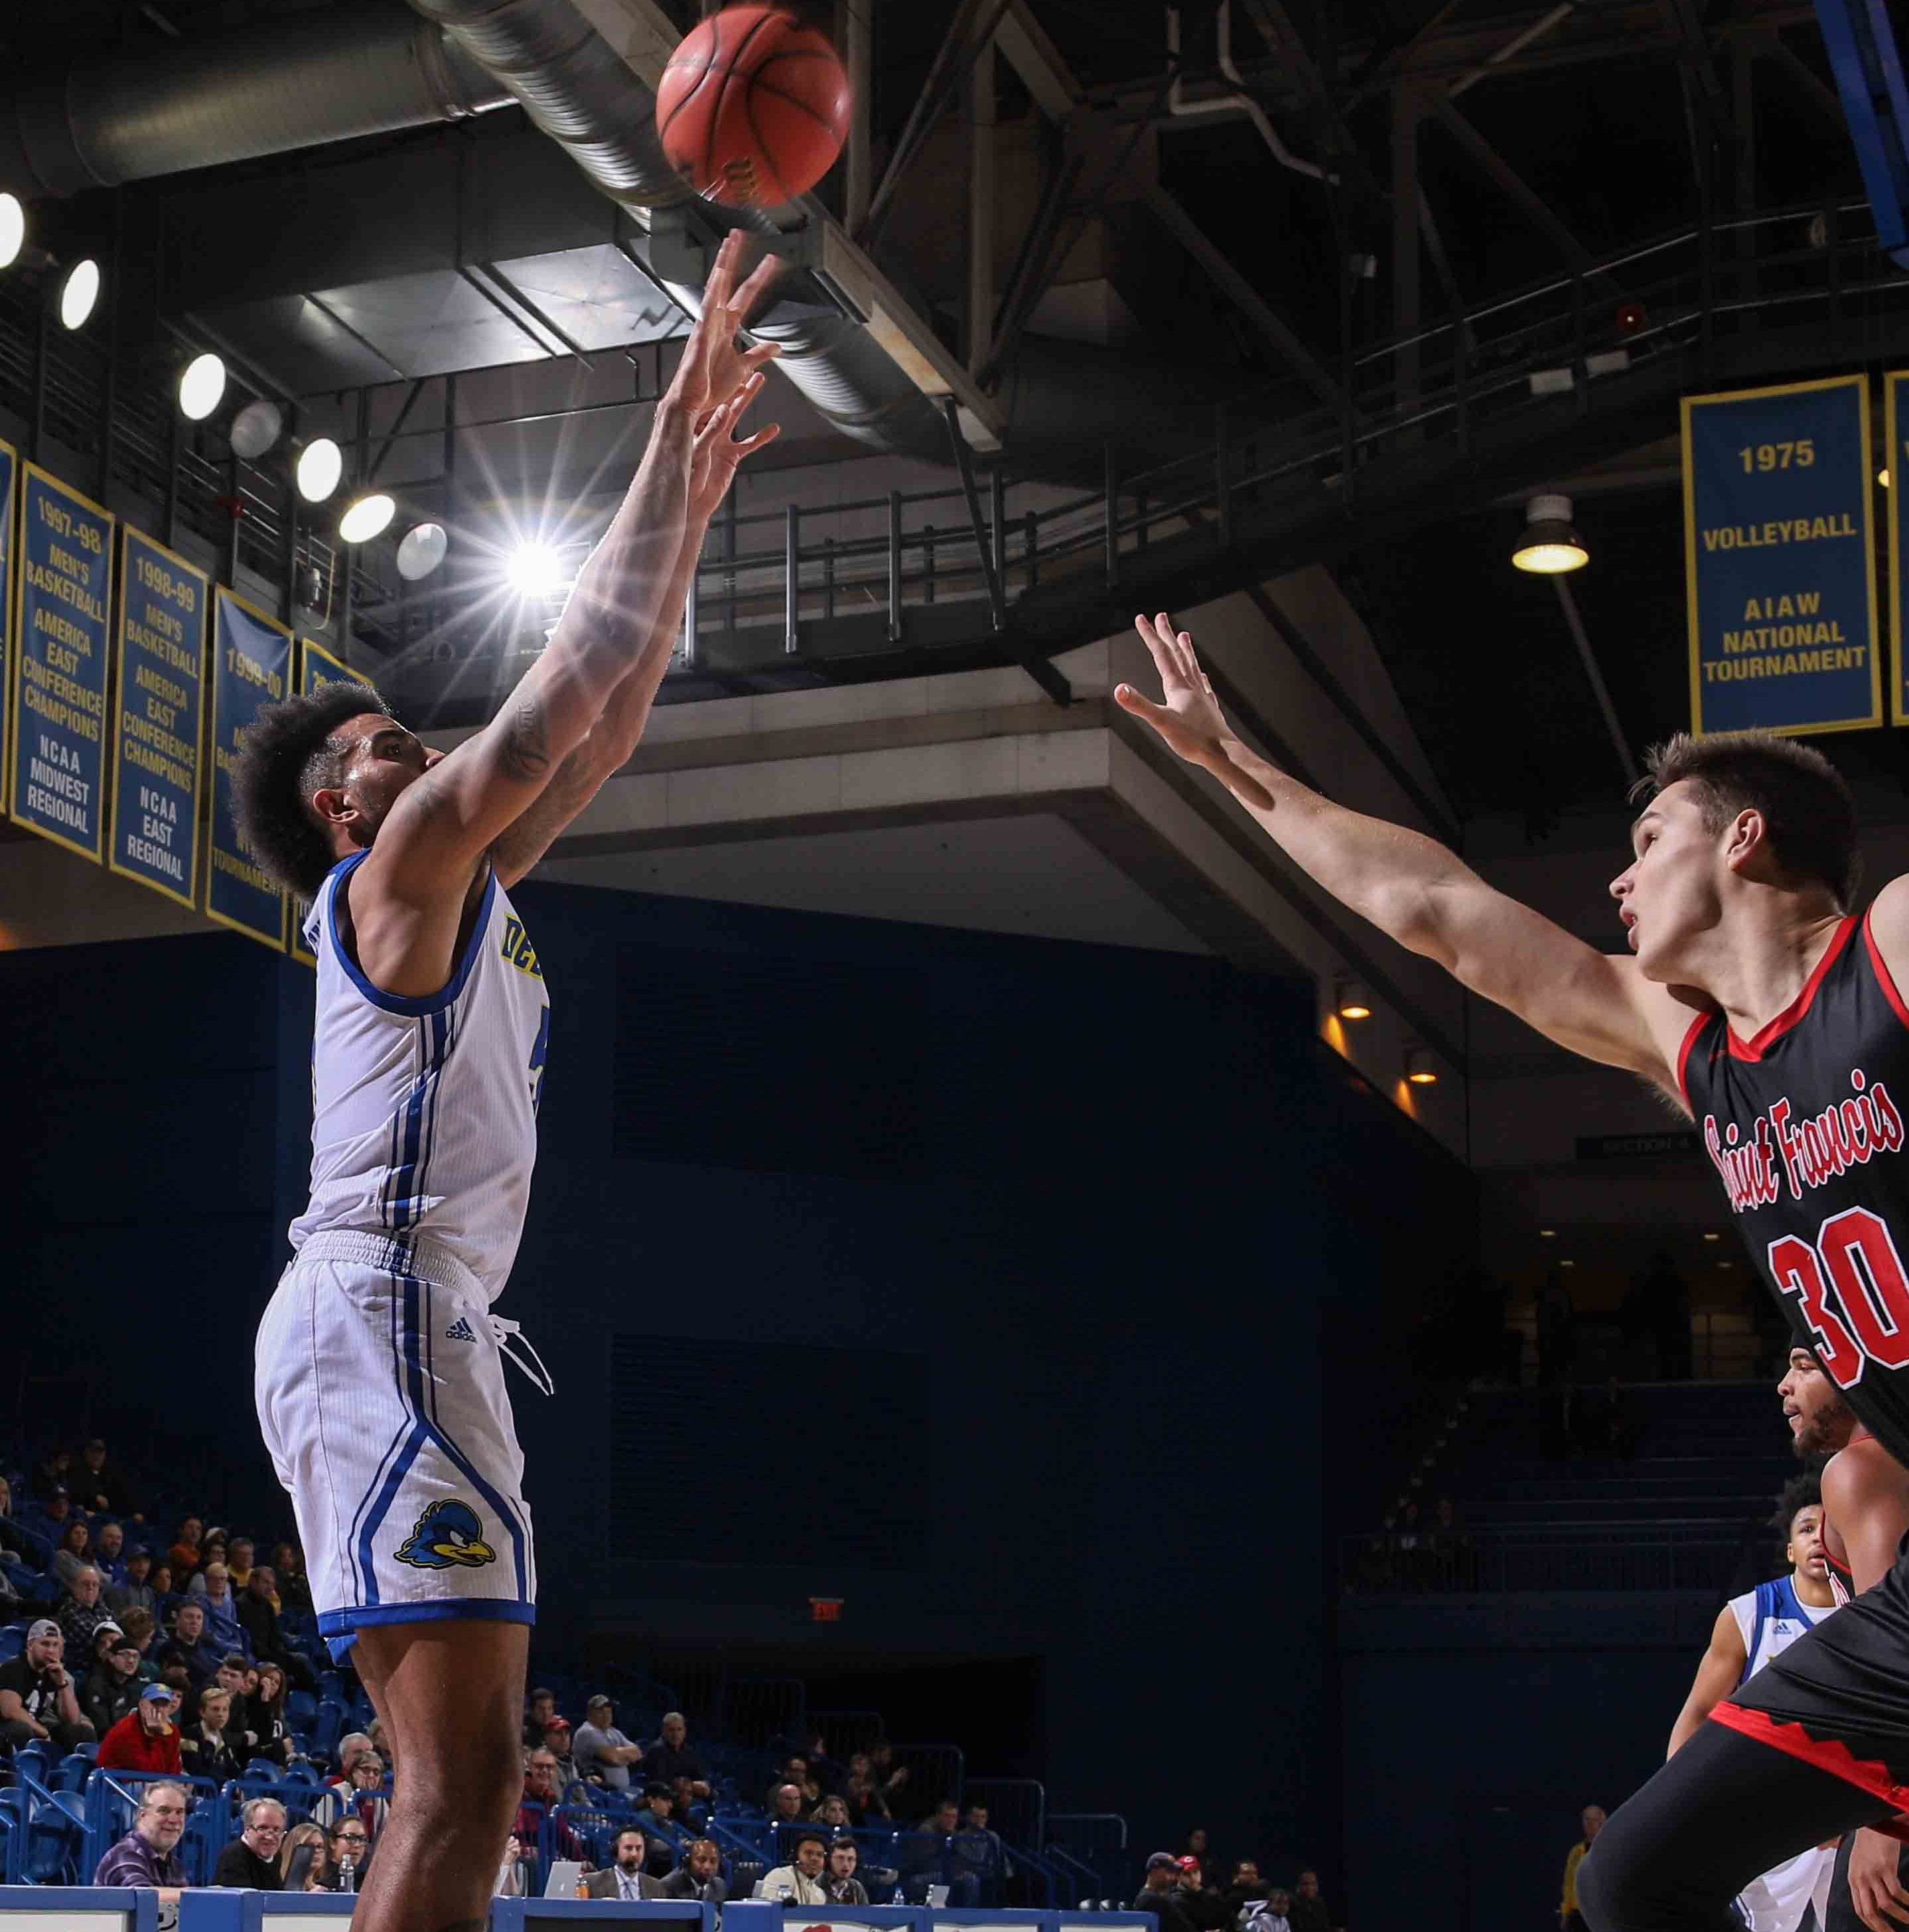 Passing the test: University of Delaware outscores St. Francis (Pa.)